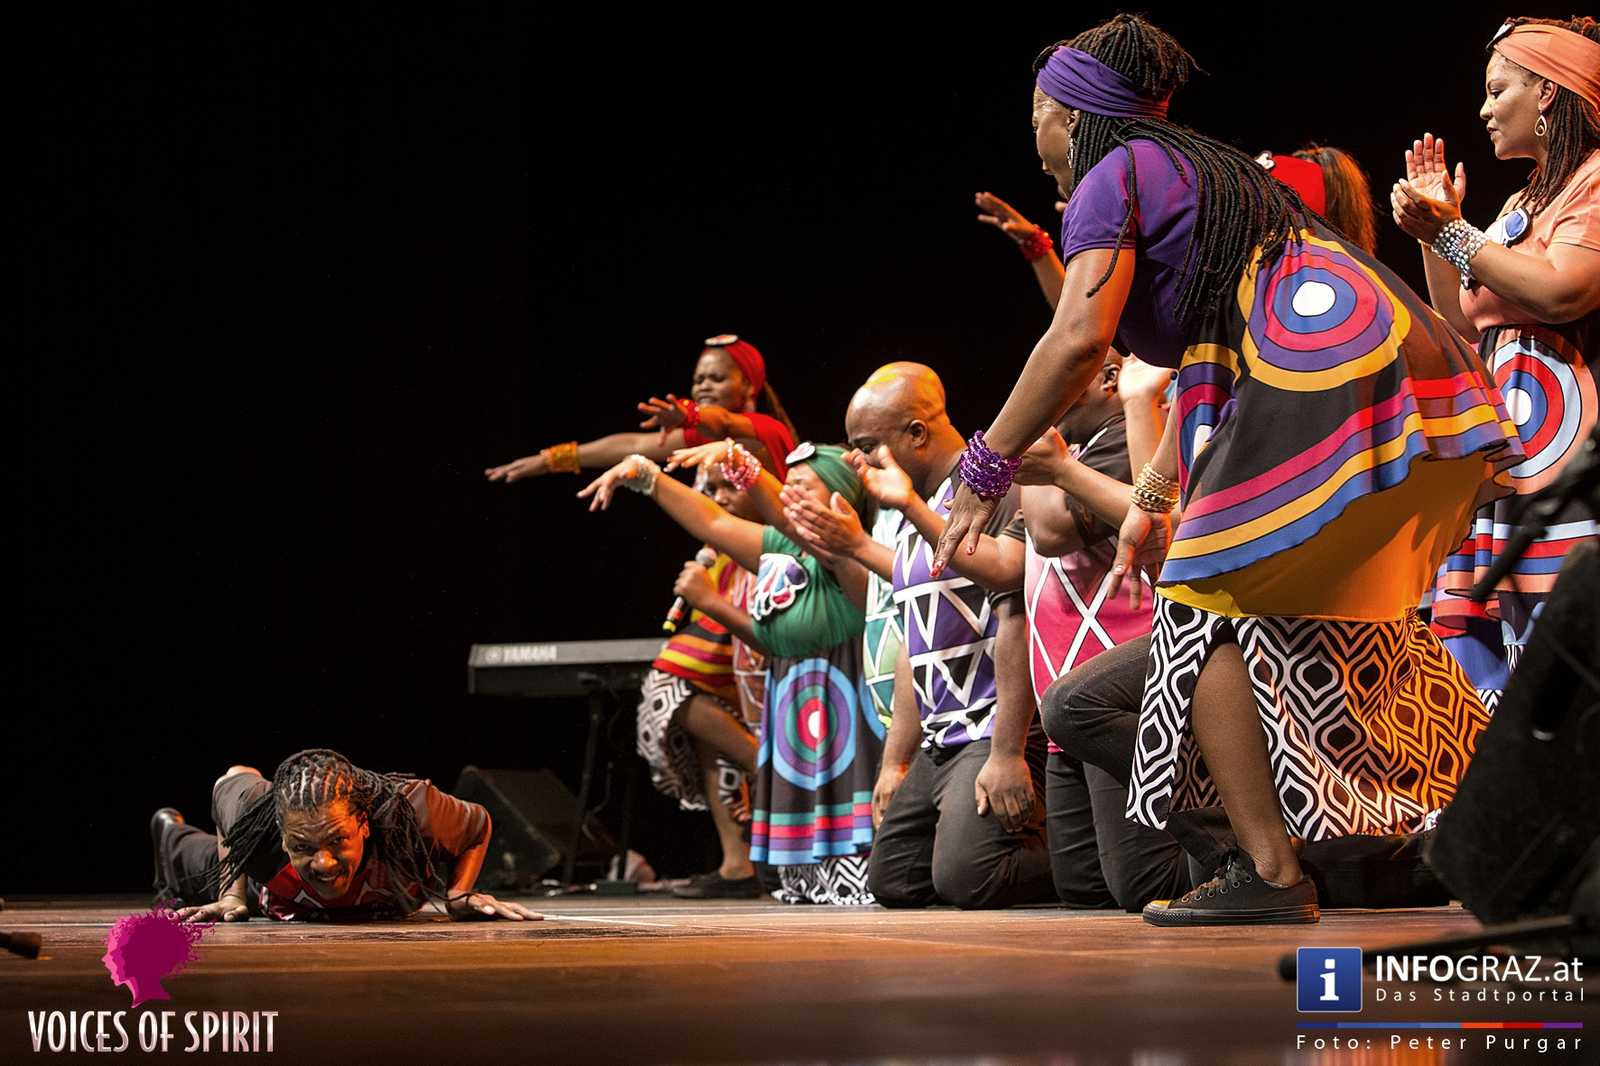 soweto gospel choir internationales chorfestival statdthalle graz voices of spirit eroeffnung festivals 2016 068